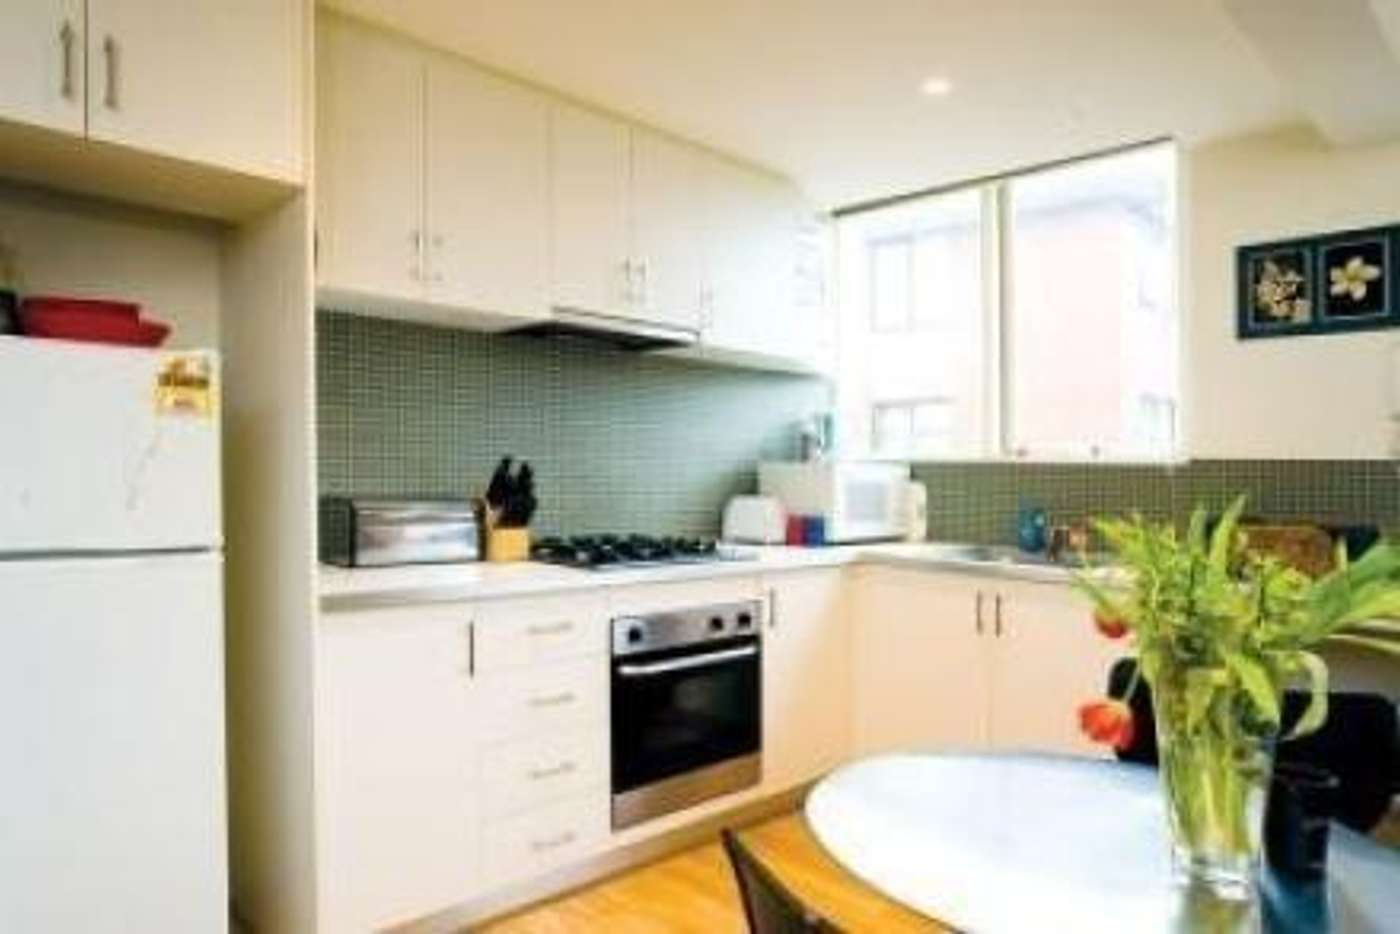 Main view of Homely unit listing, 7/58 Byron Street, Elwood VIC 3184